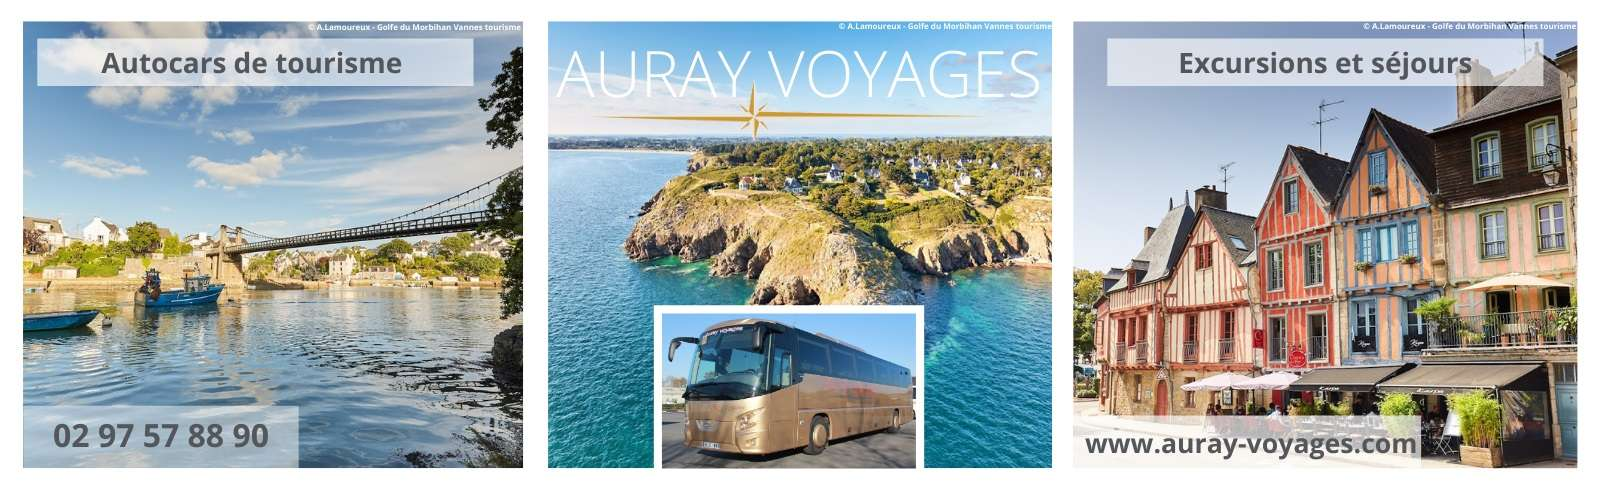 Auray Voyages